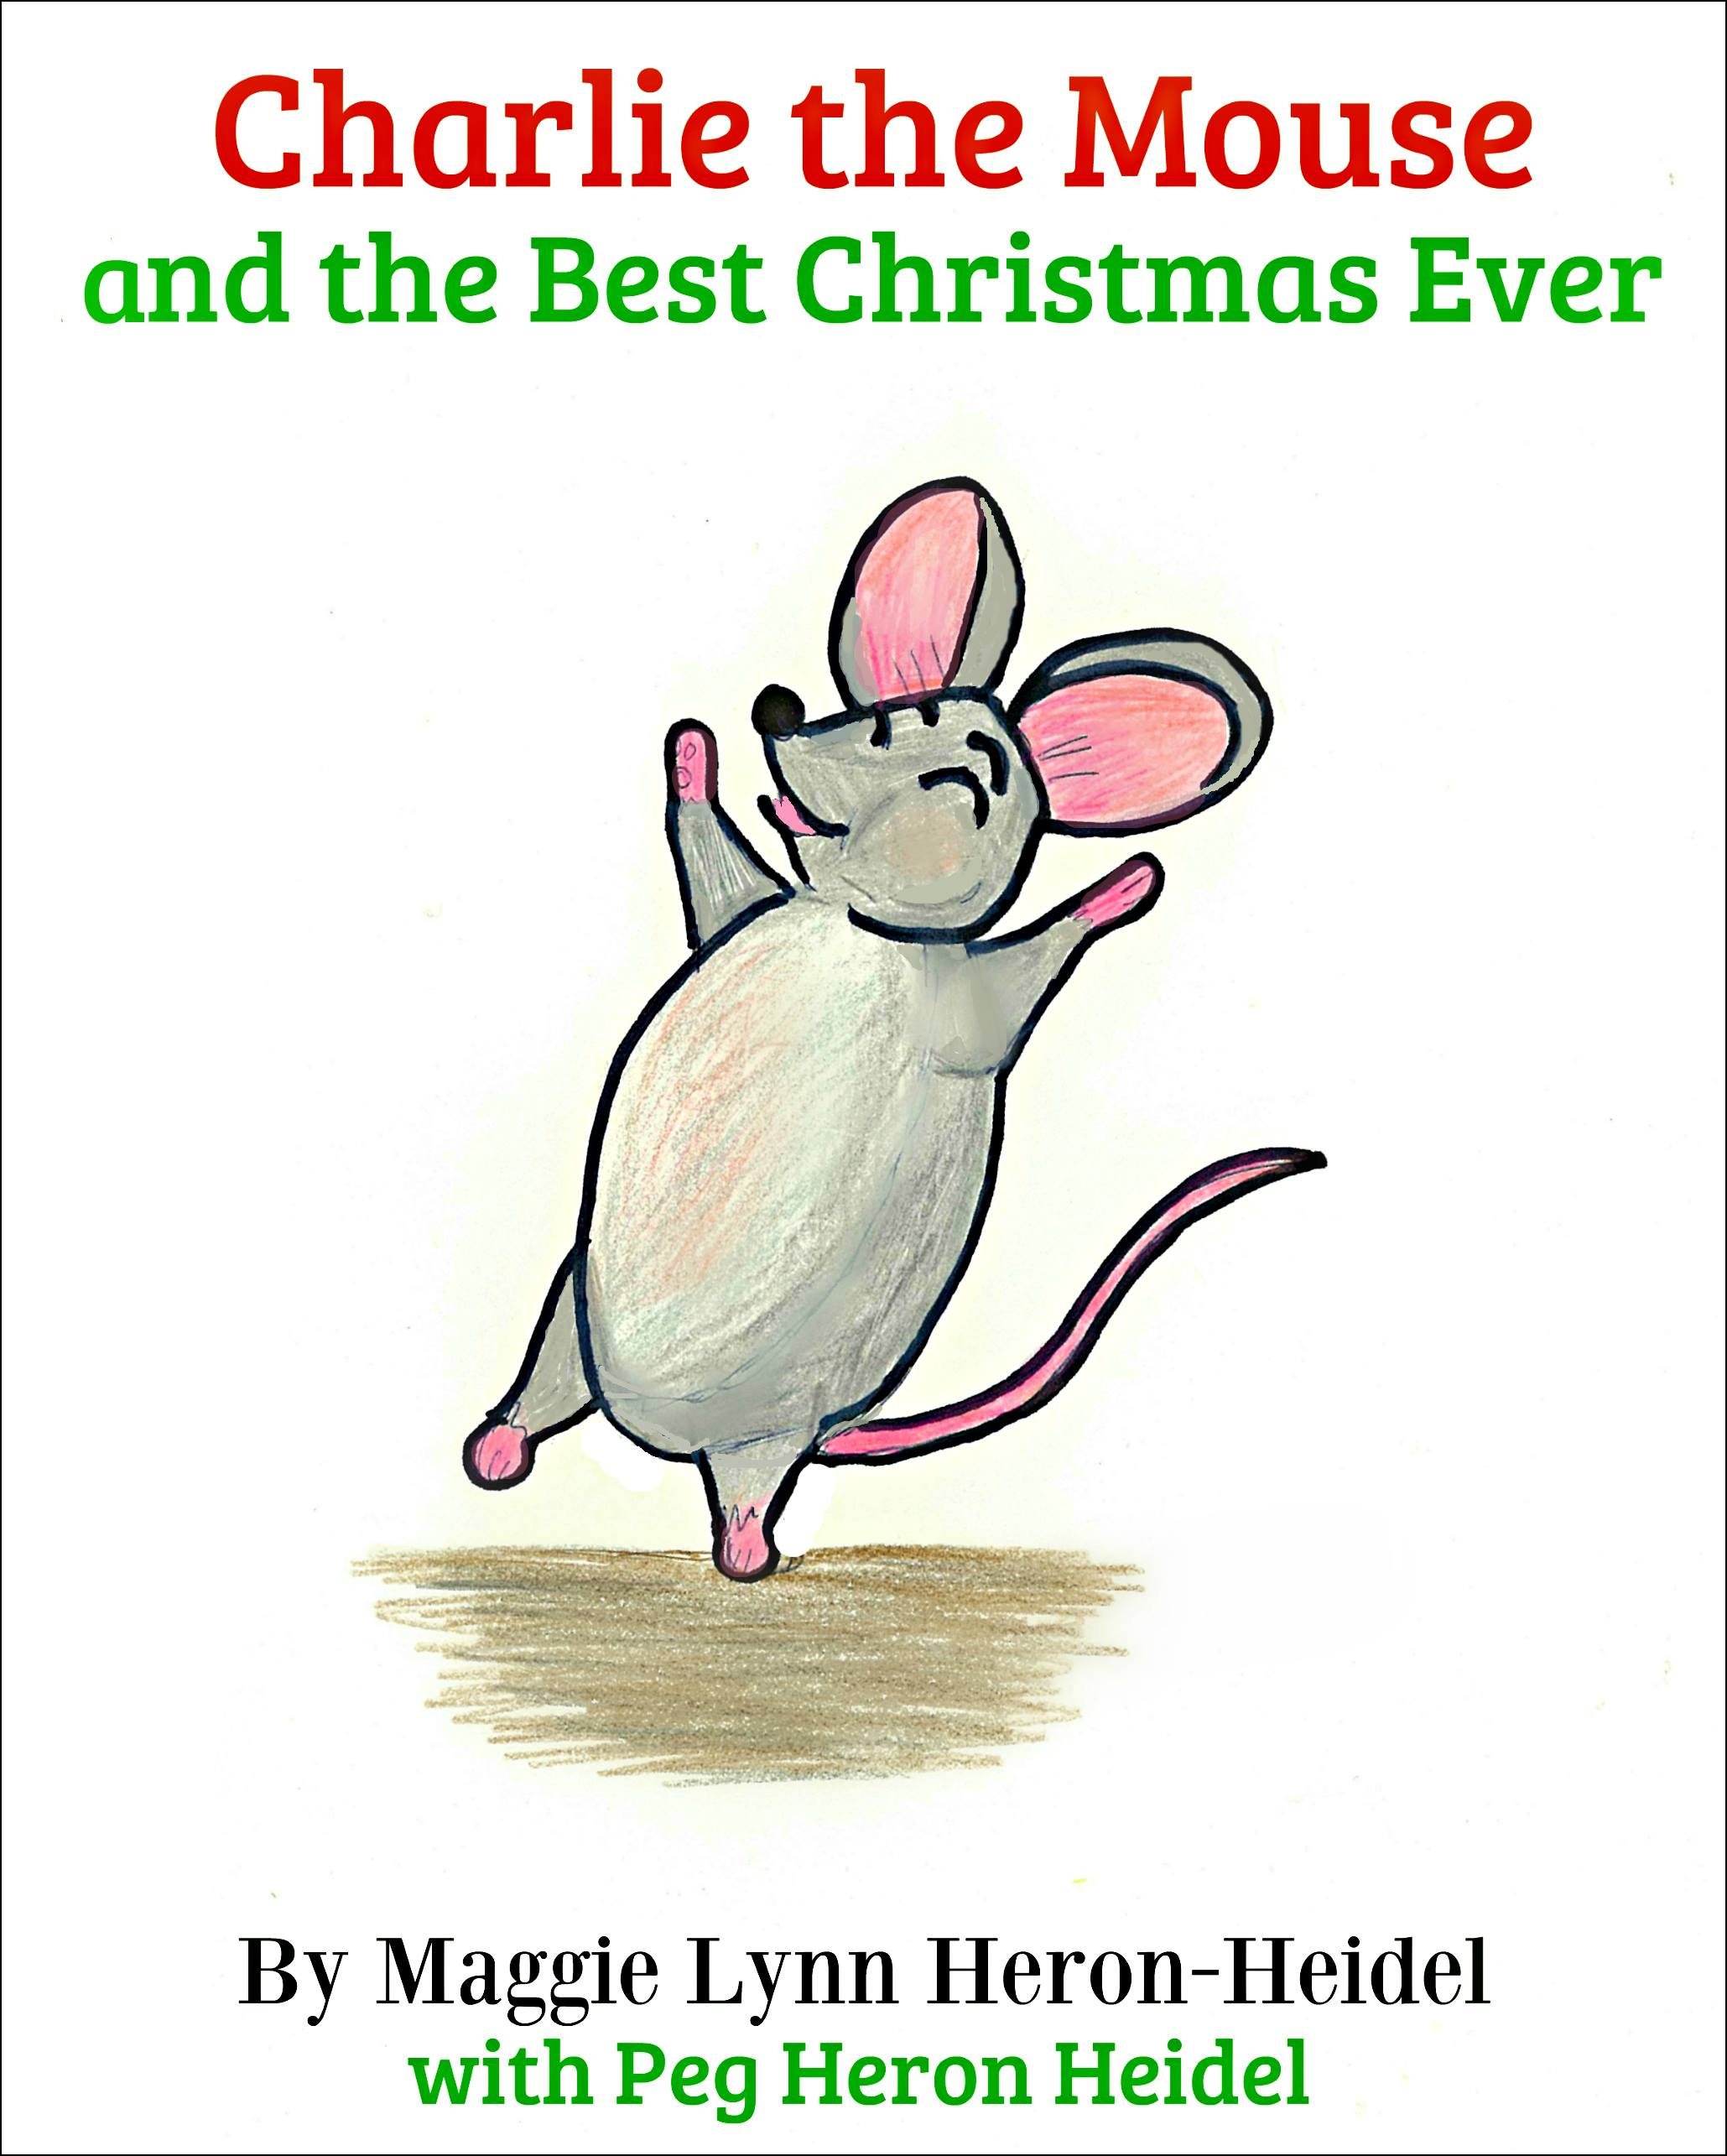 Charlie the Mouse and the Best Christmas Ever